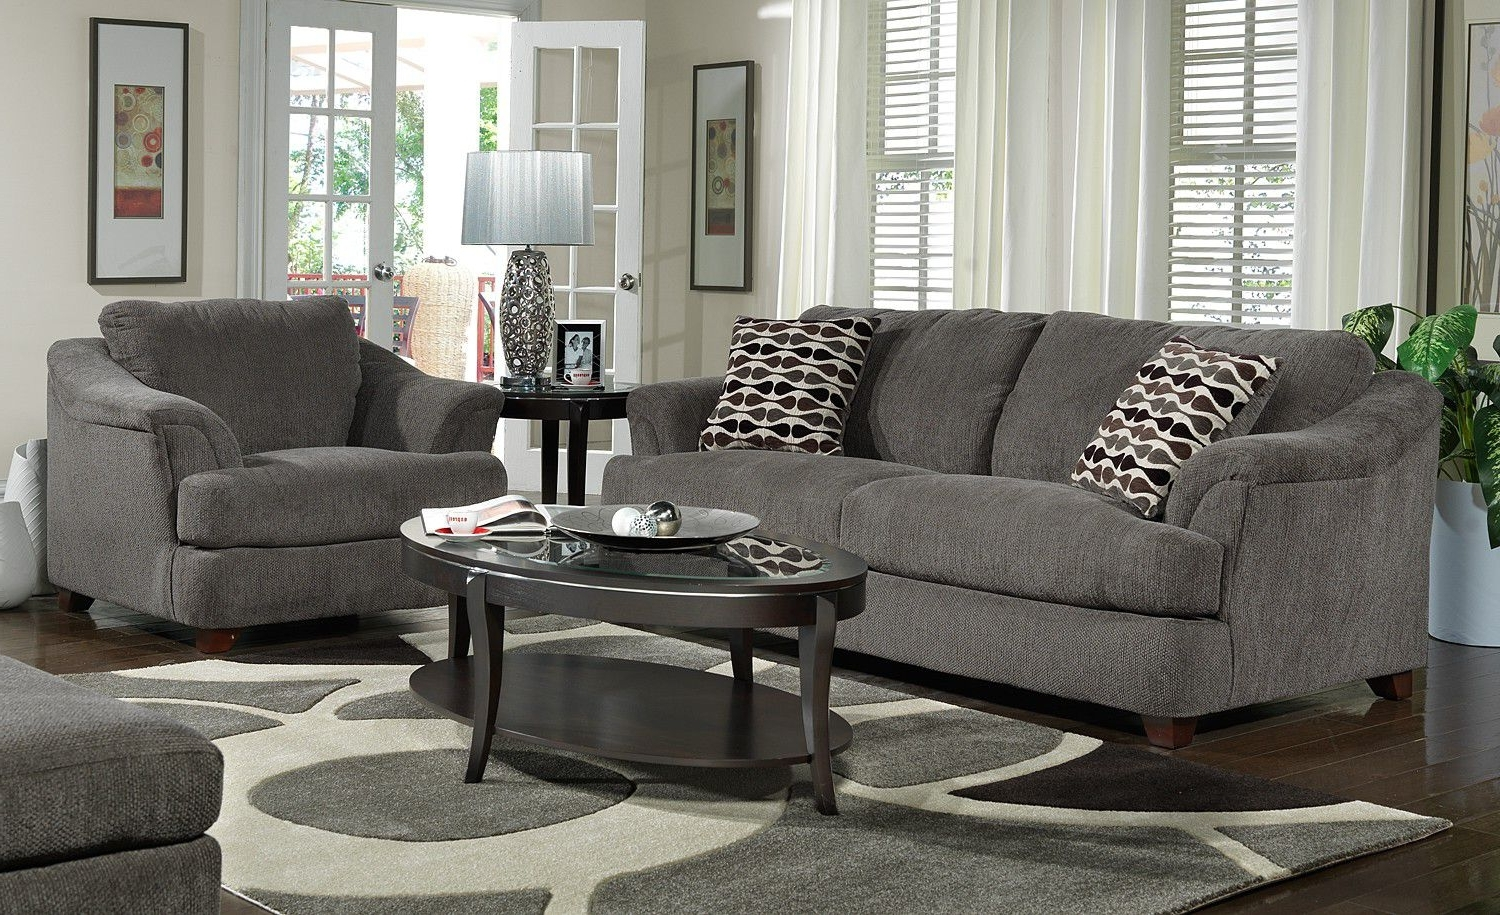 Living Room Design : Living Room Susan Design Ideas Grey Sofa Inside 2019 Grey Sofa Chairs (View 4 of 20)